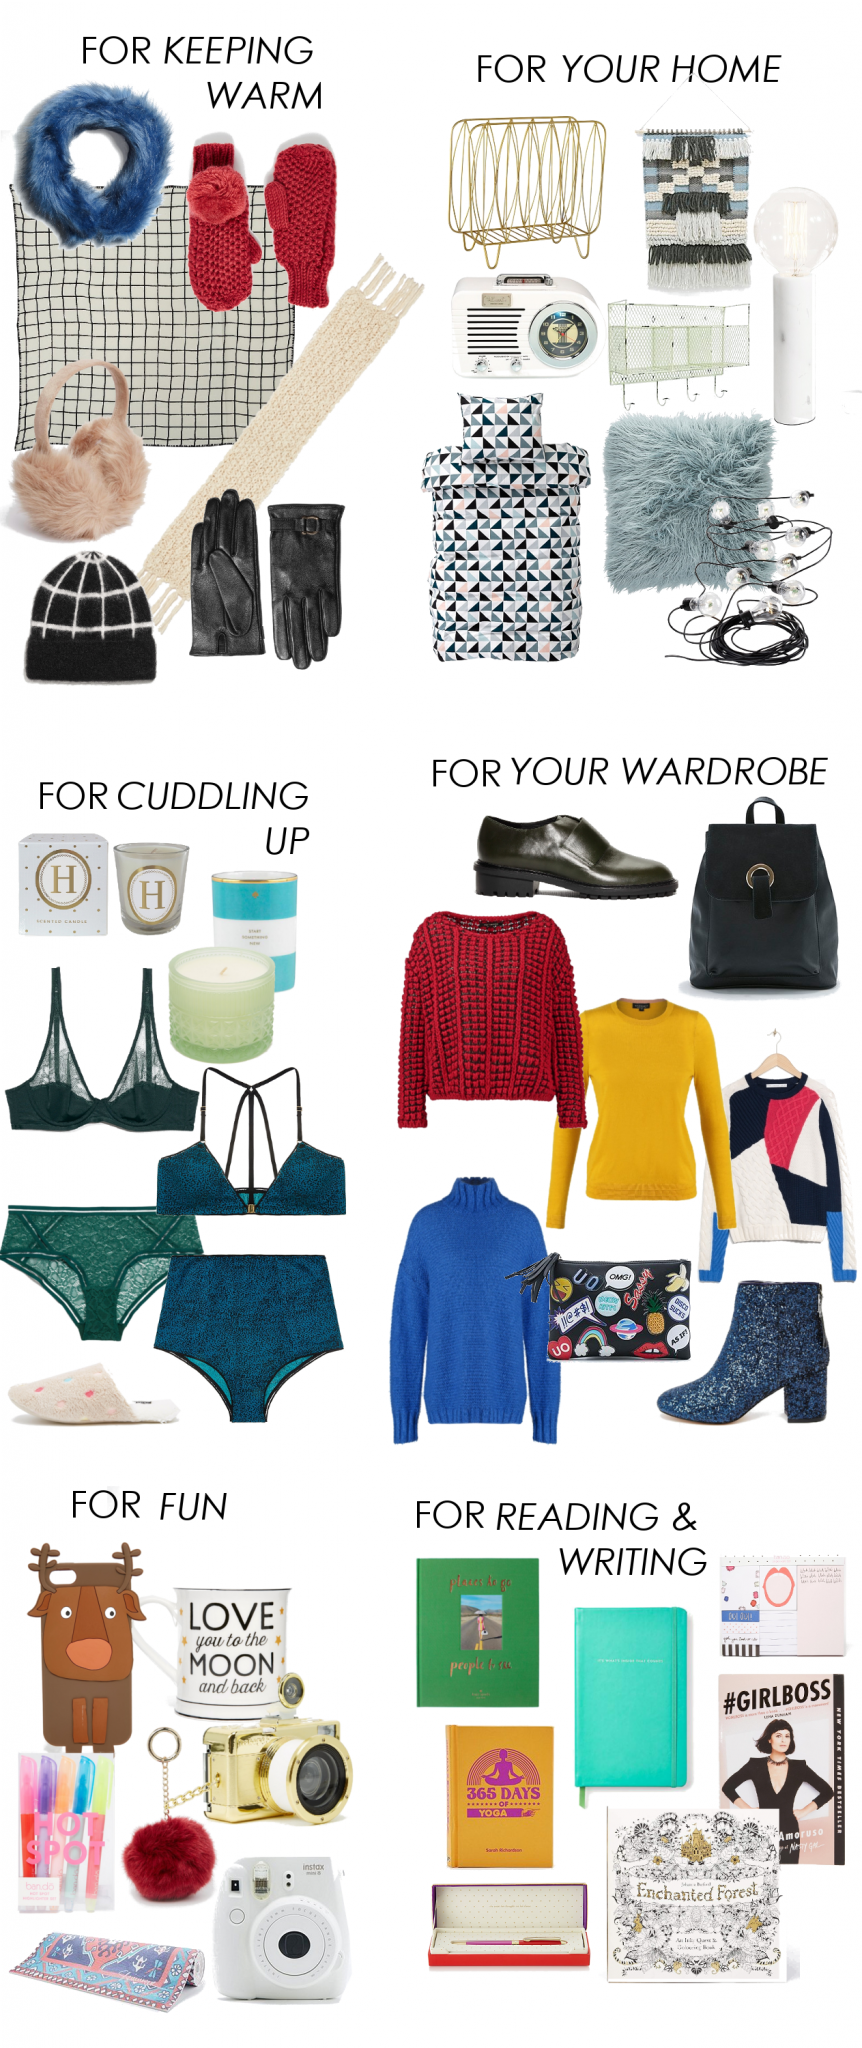 CHRITMAS GIFT GUIDE WISHES